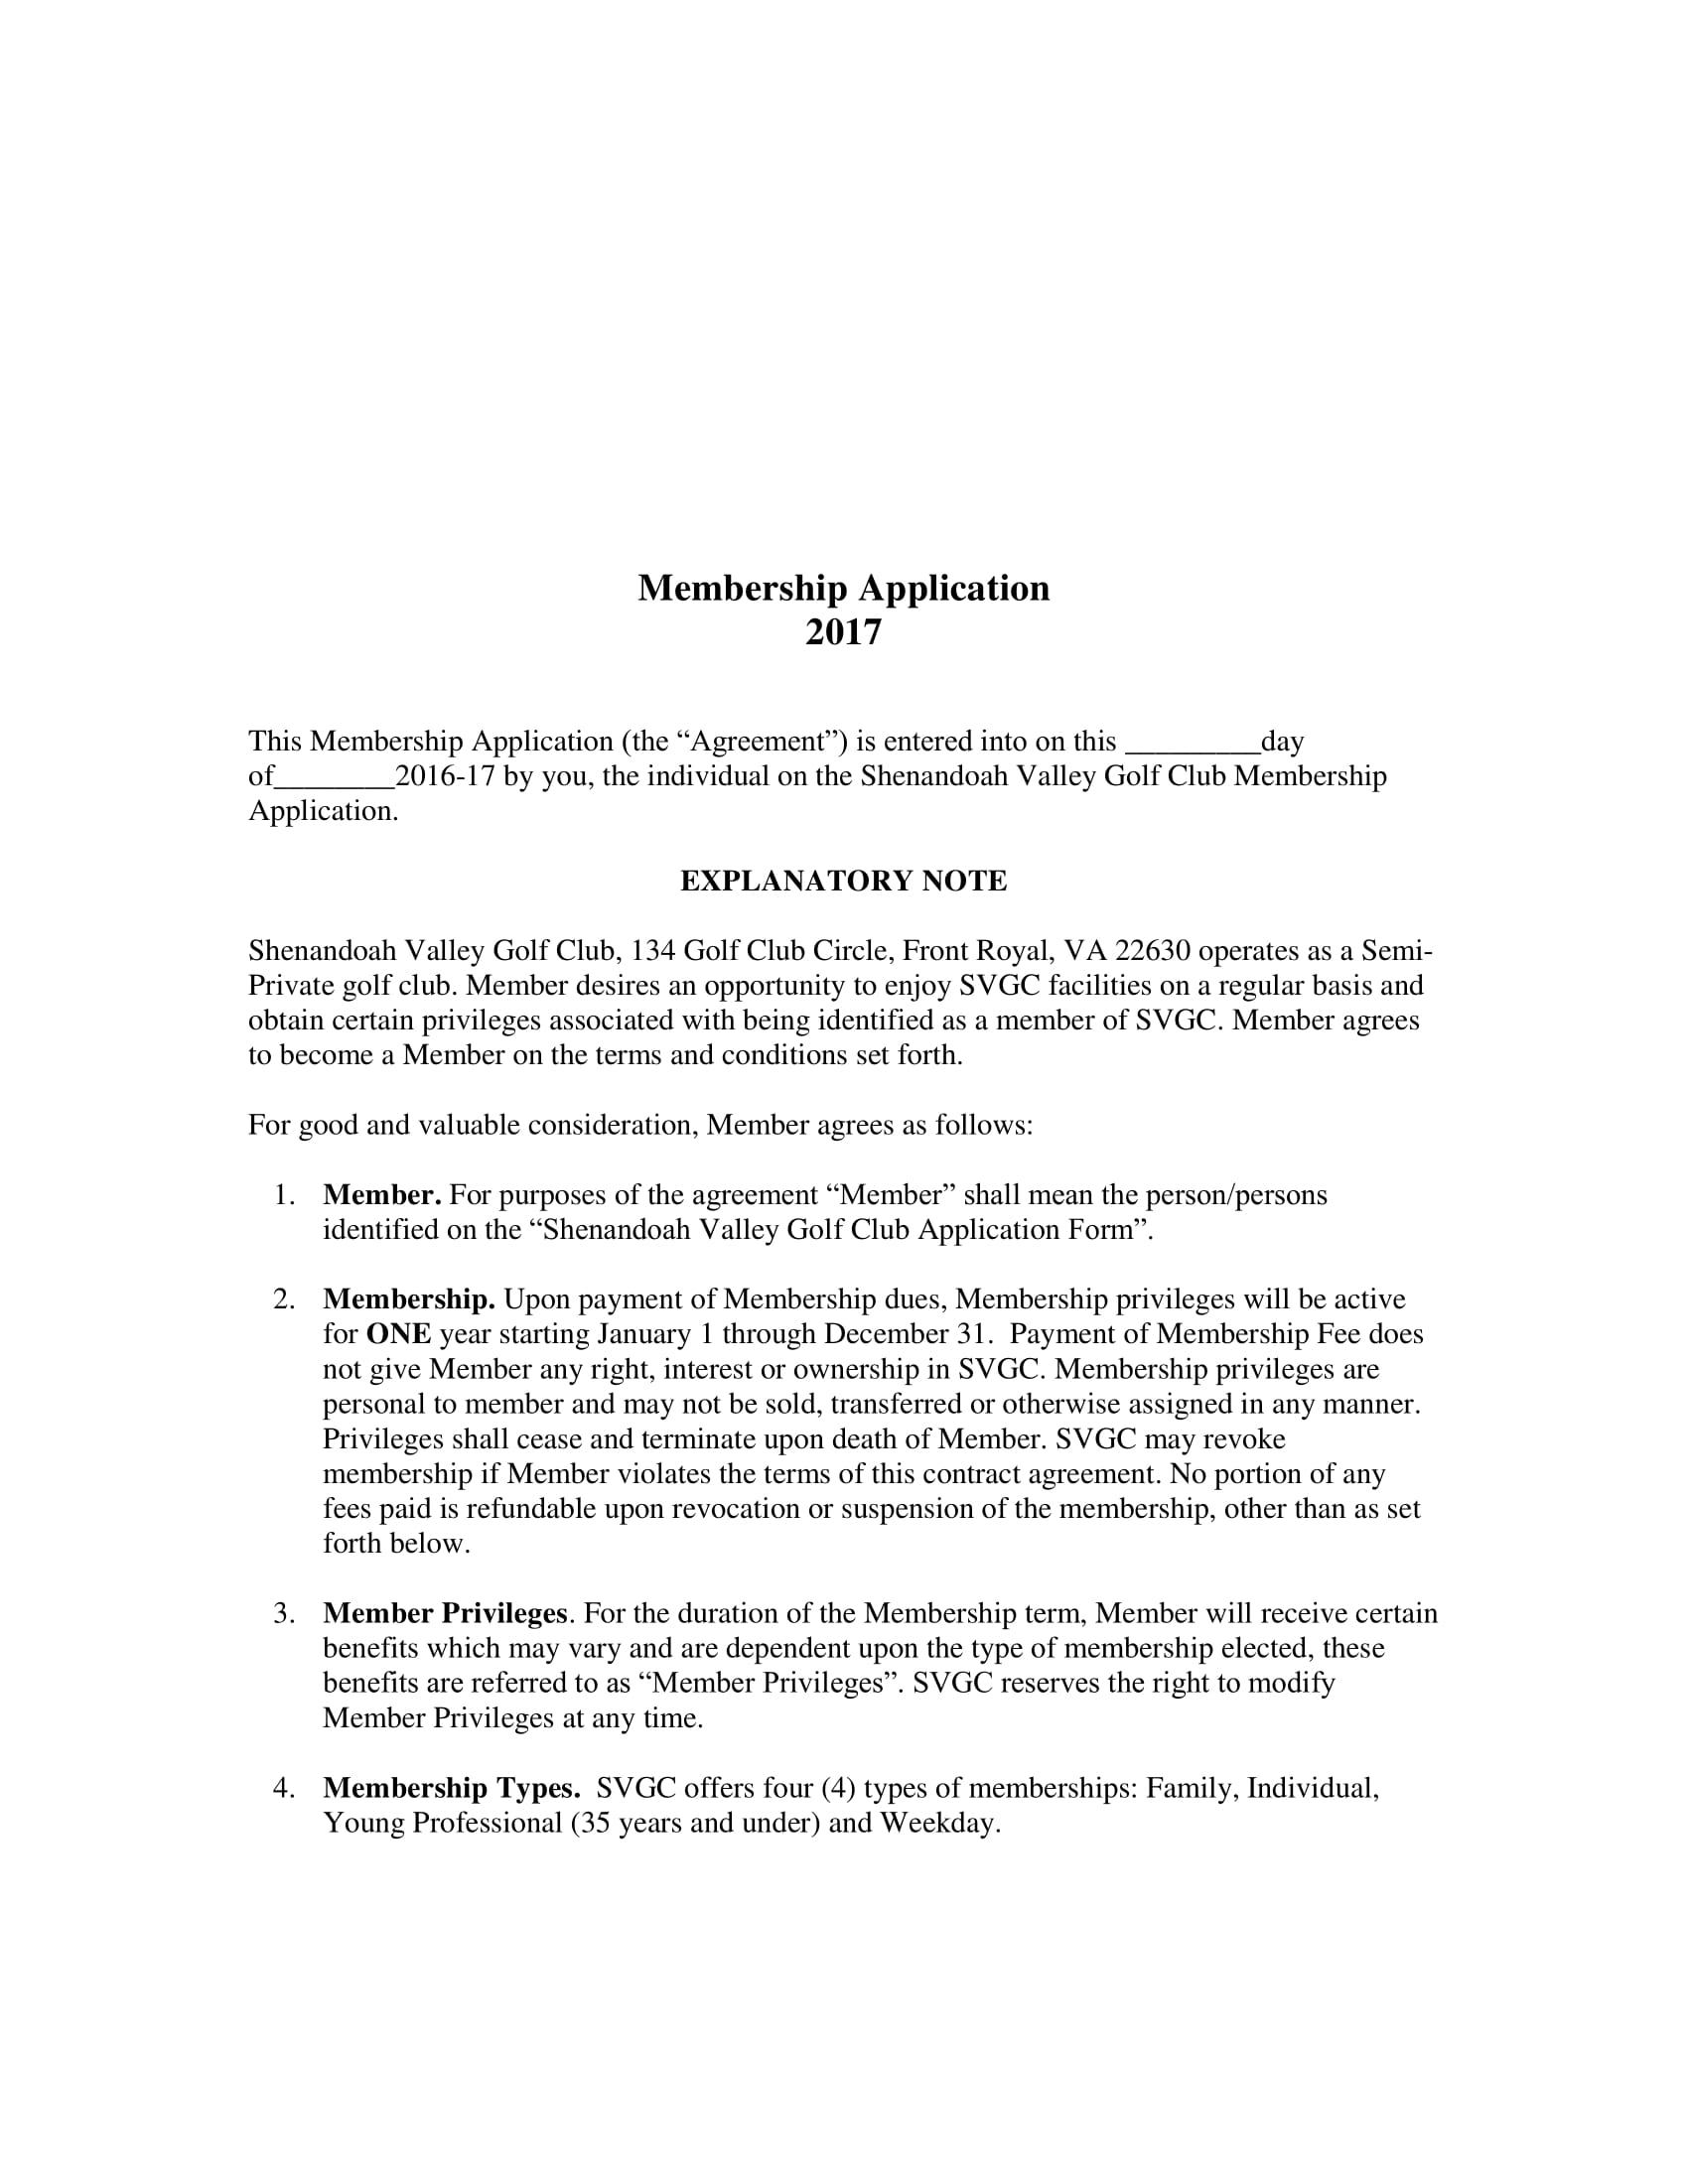 golf membership application contract form 1